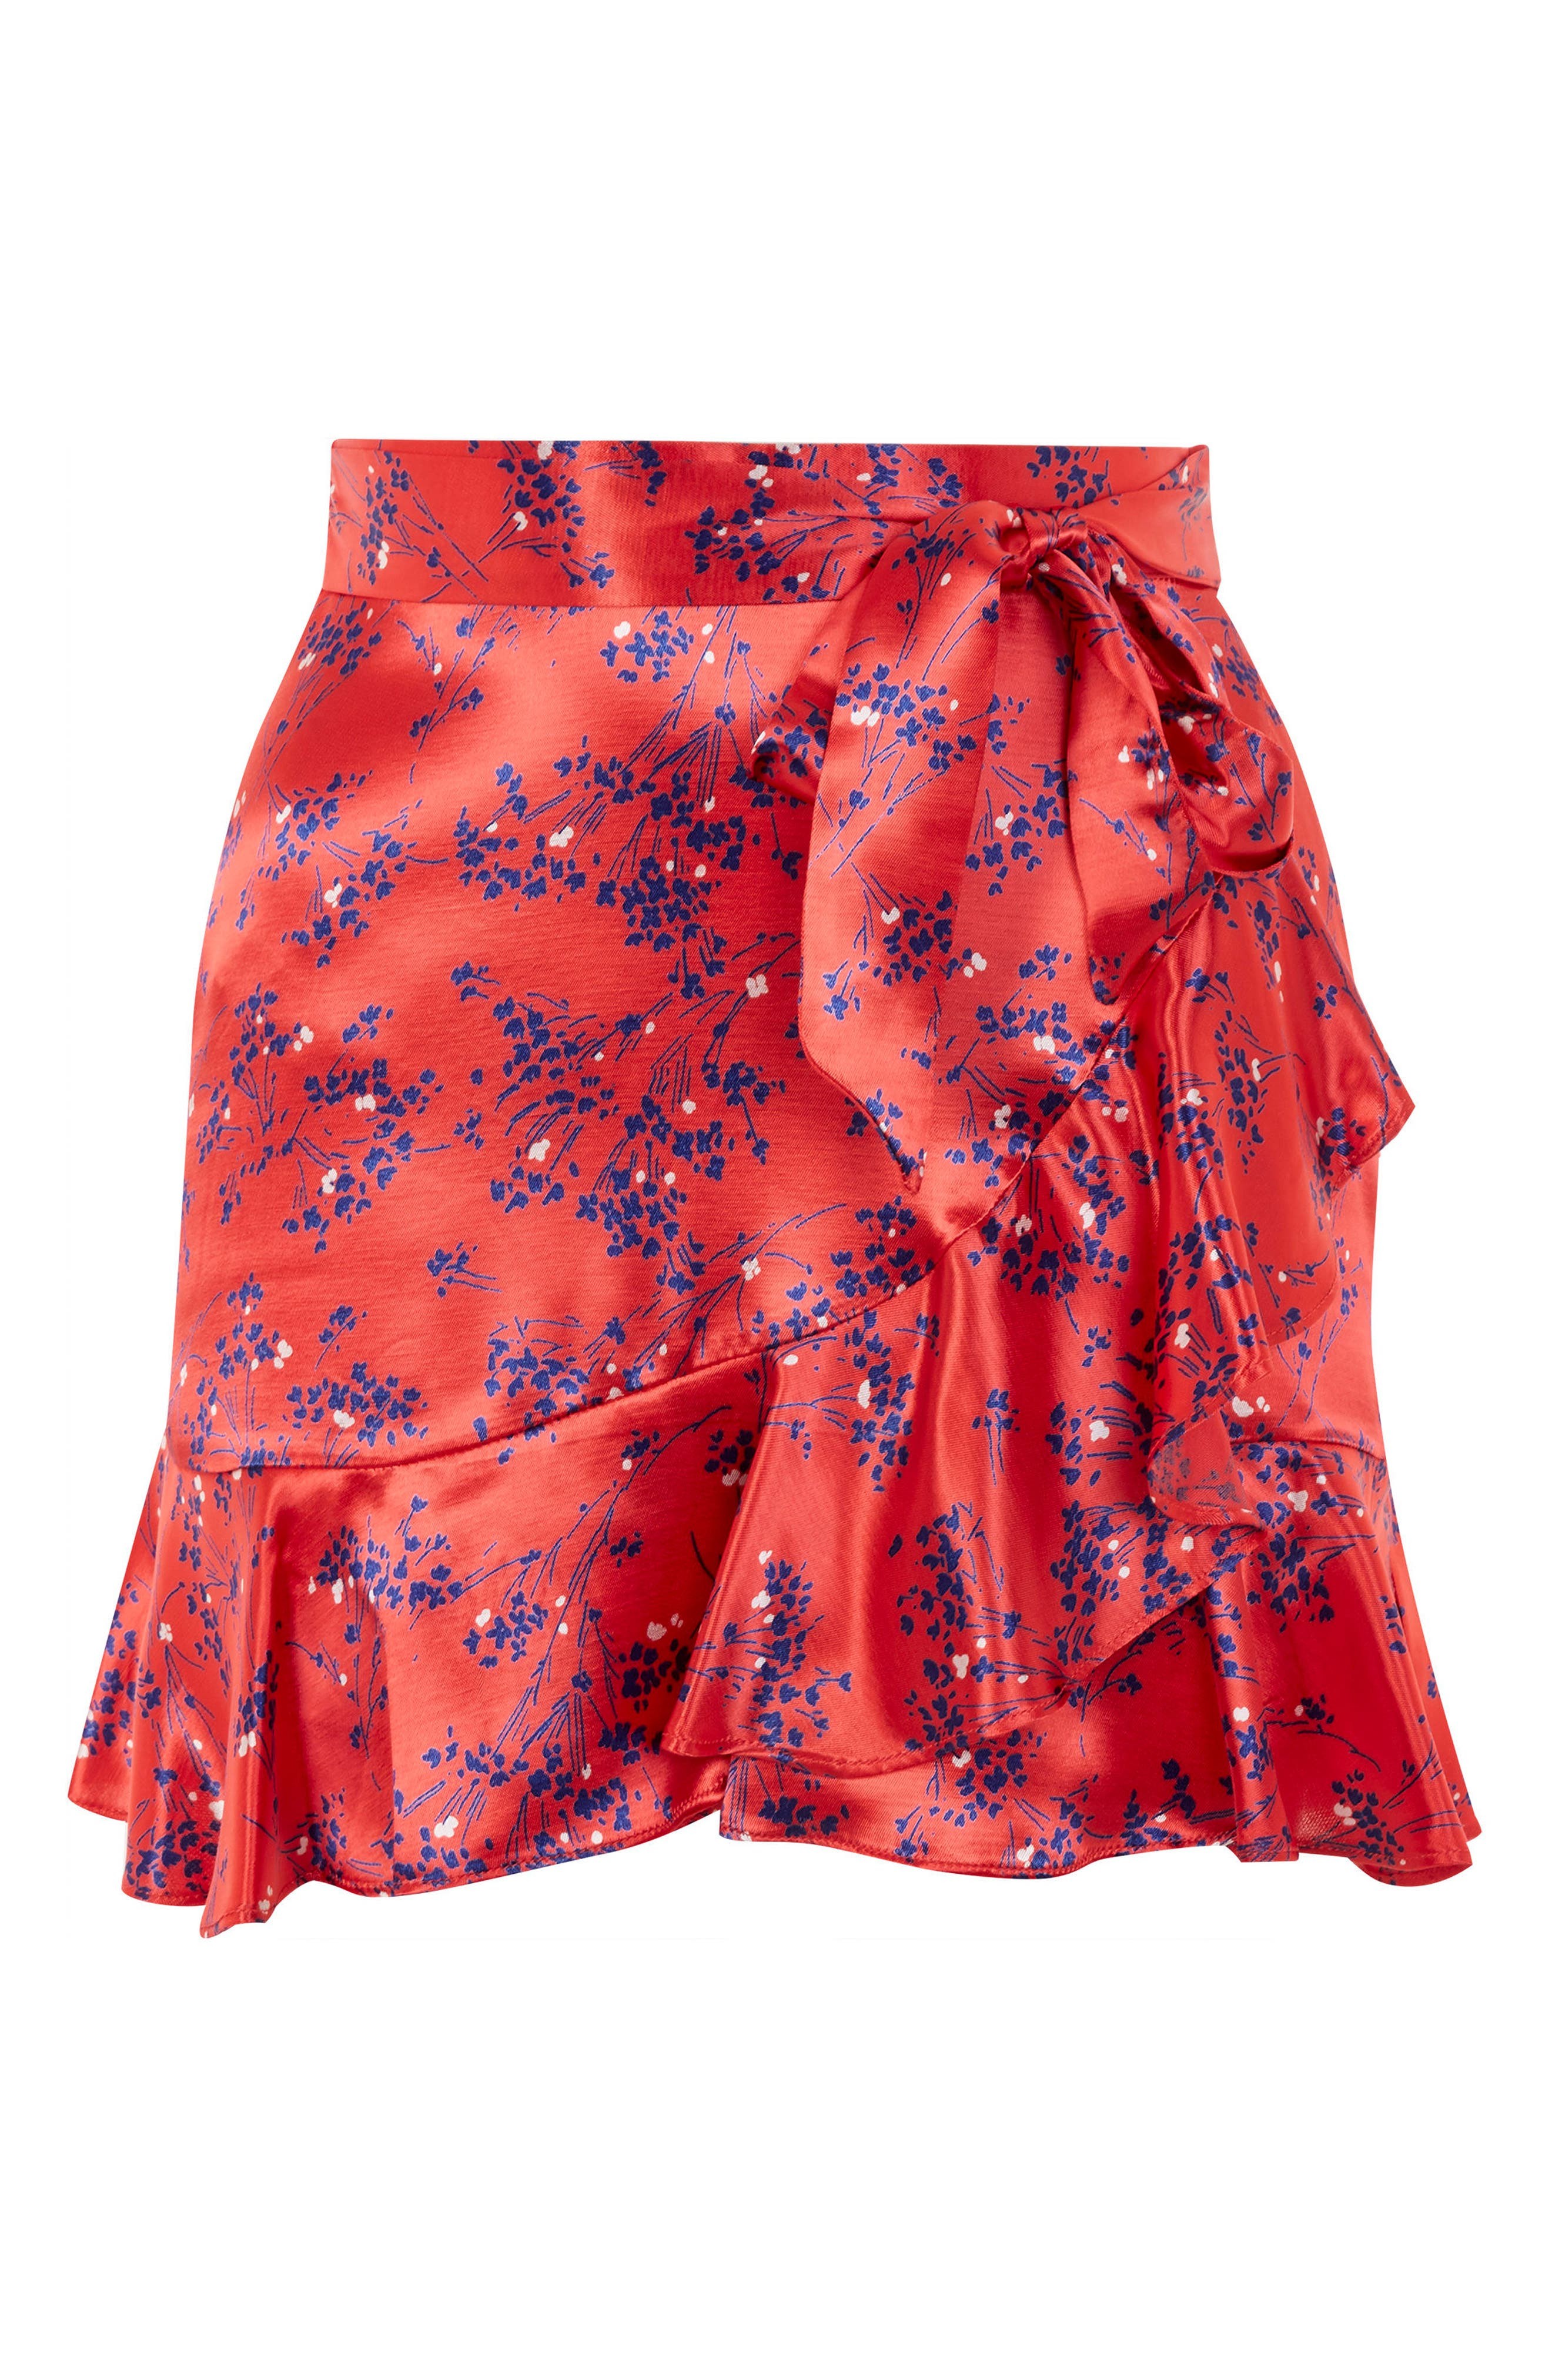 Floral Print Miniskirt,                             Alternate thumbnail 3, color,                             600